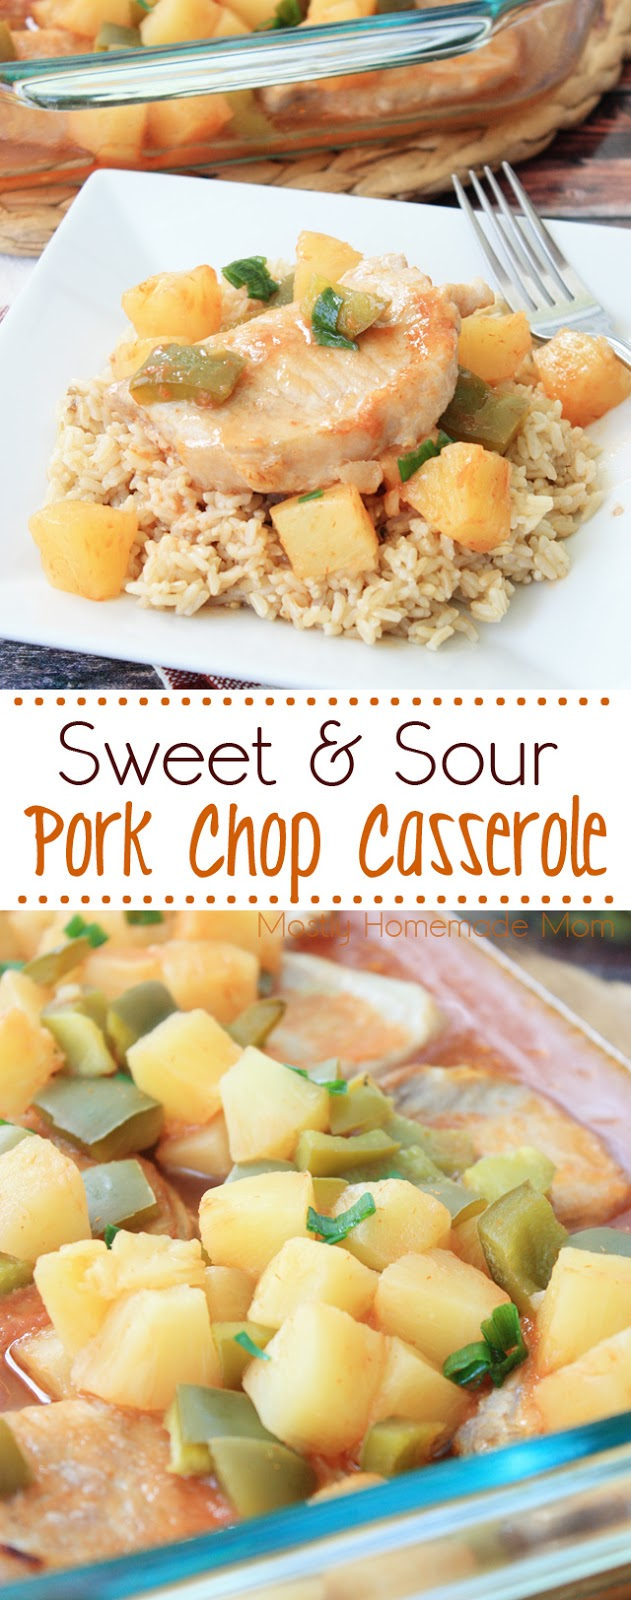 sweet and sour pork chop casserole